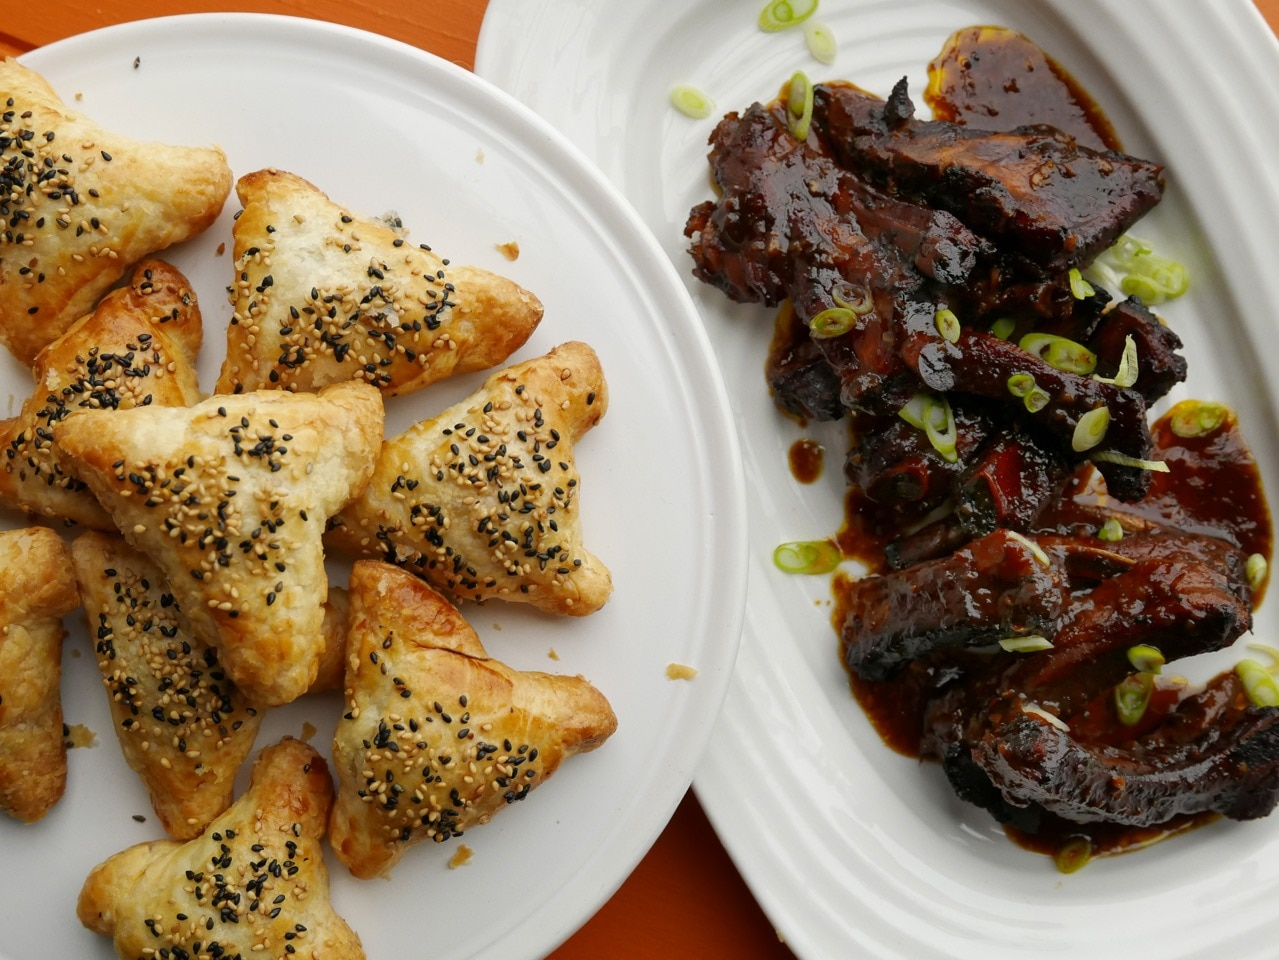 Sunday Brunch - Articles - Jeremy Pang's BBQ Hoisin and Cola Ribs